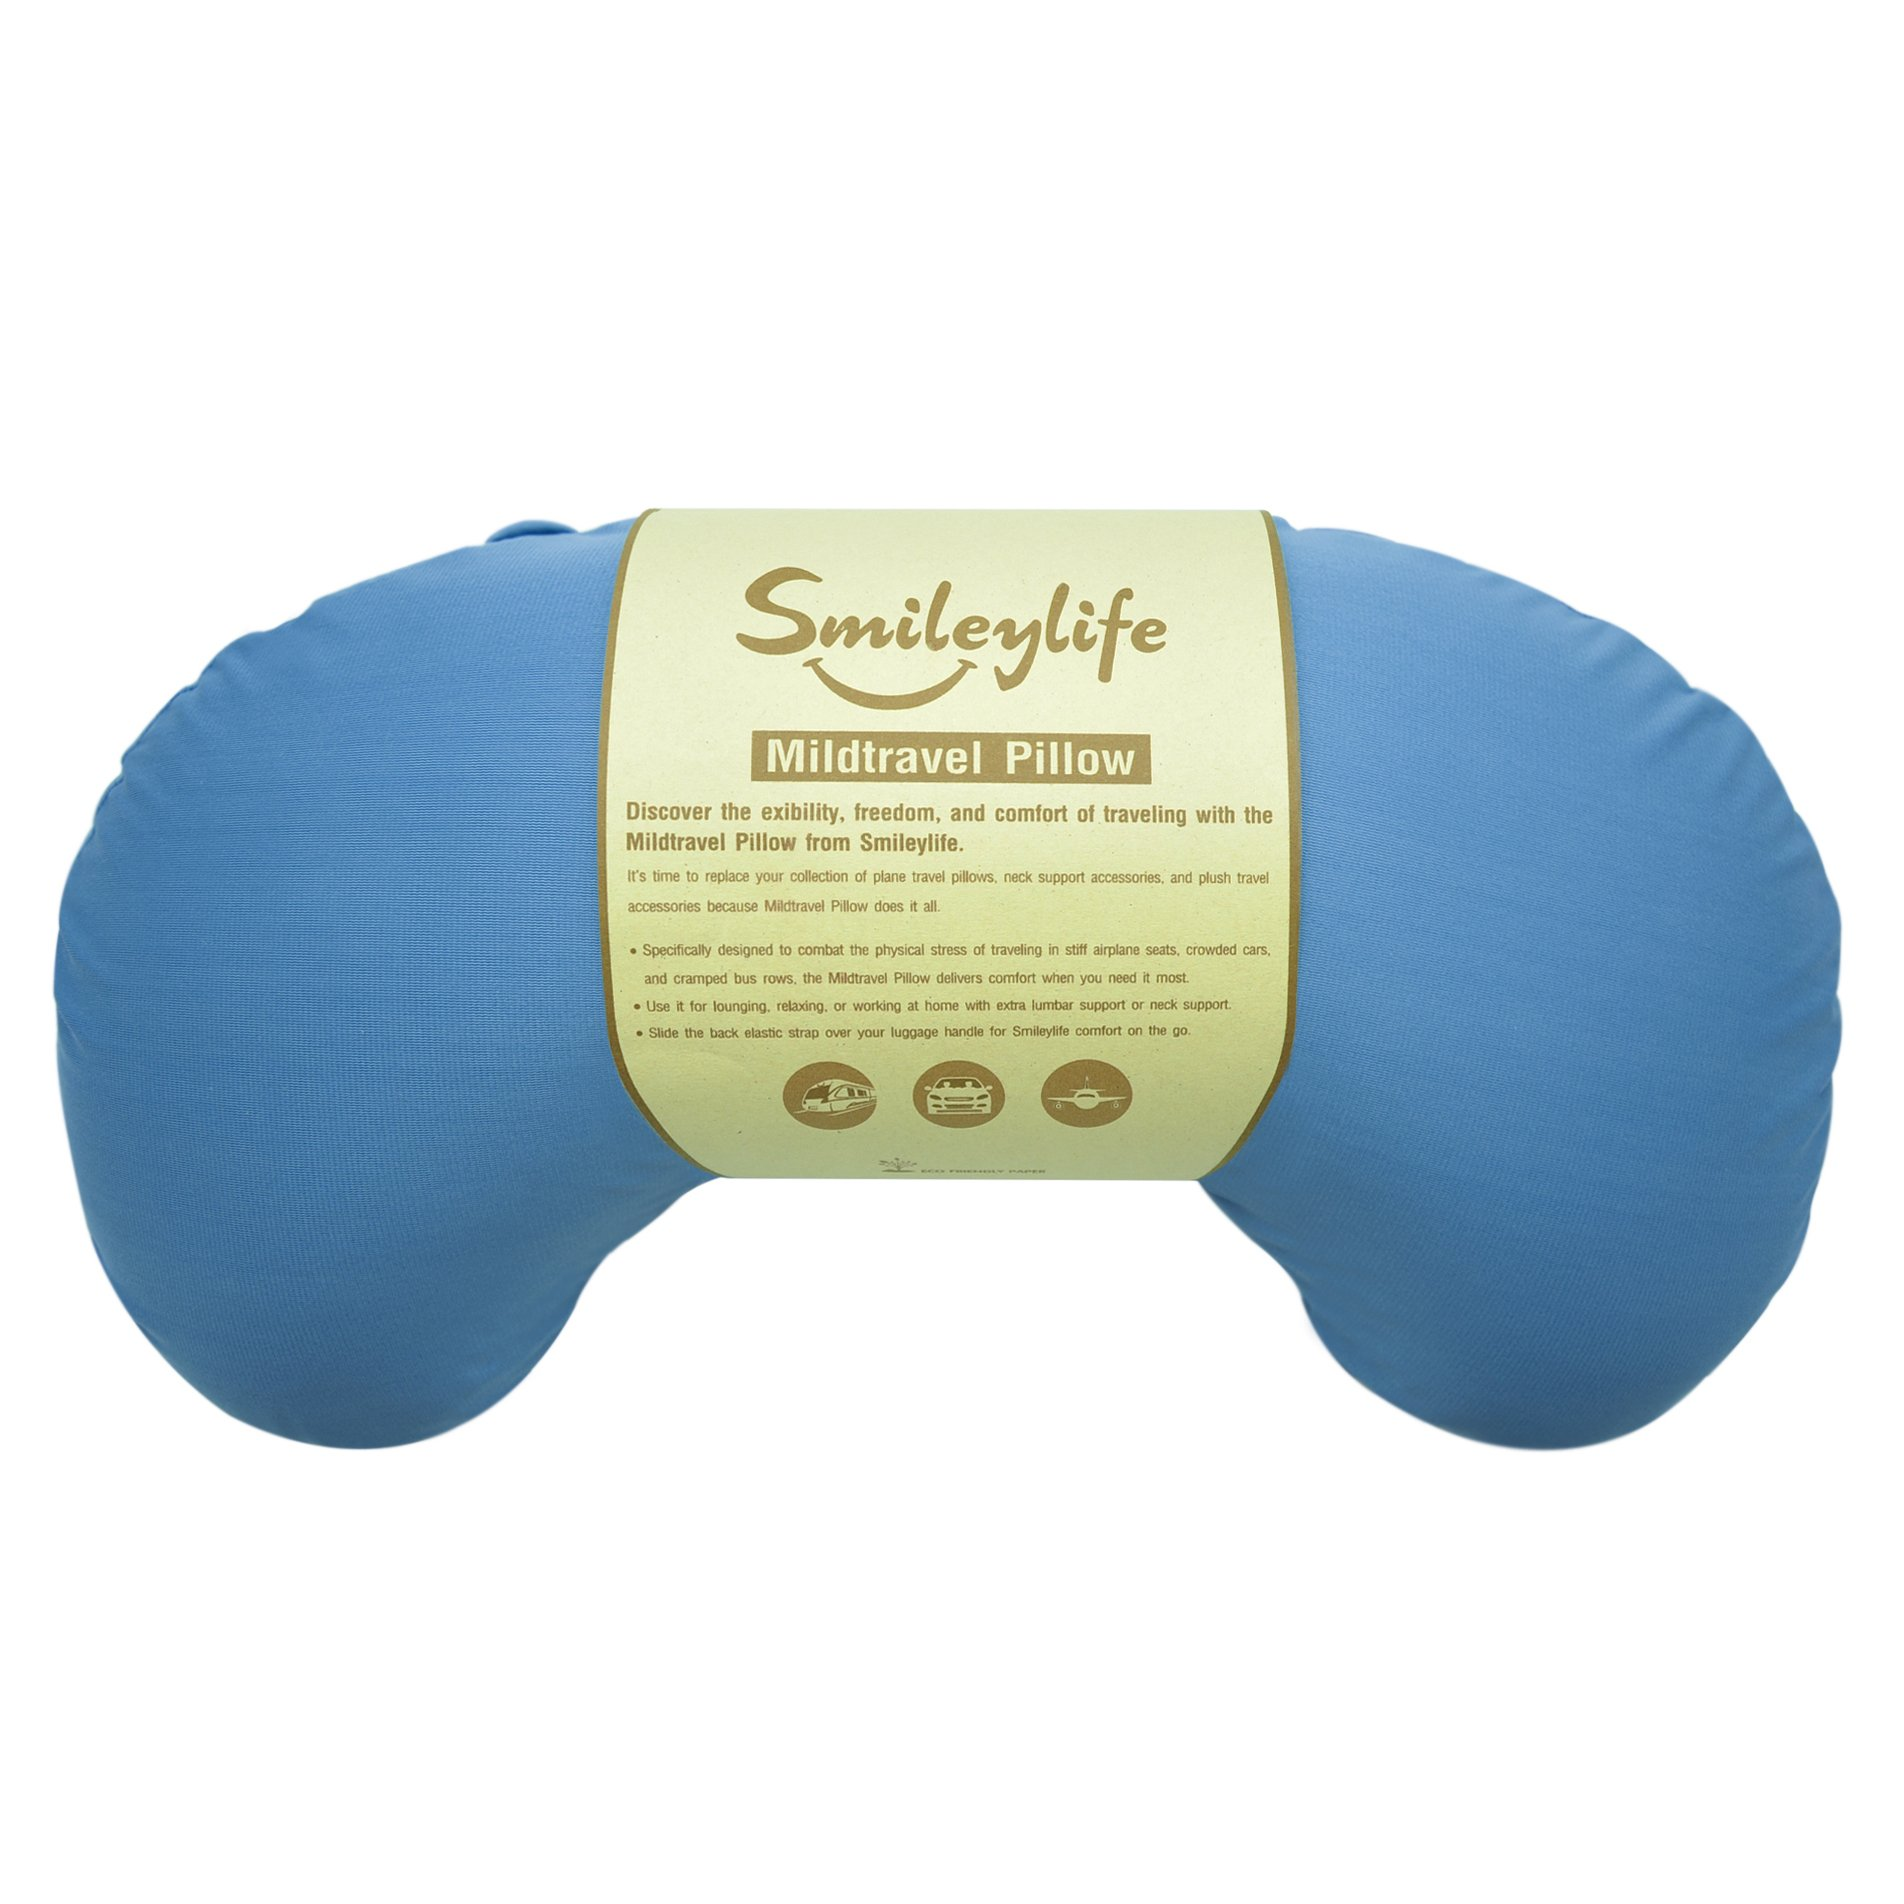 Neck Pillow - Best Accessories for Neck and Lumbar Support from Smileylife. Comfortable, Easy to Carry, Luggage Attaching, Hypoallergenic & Washable Cover. Let Travel Pillow Comfort You!